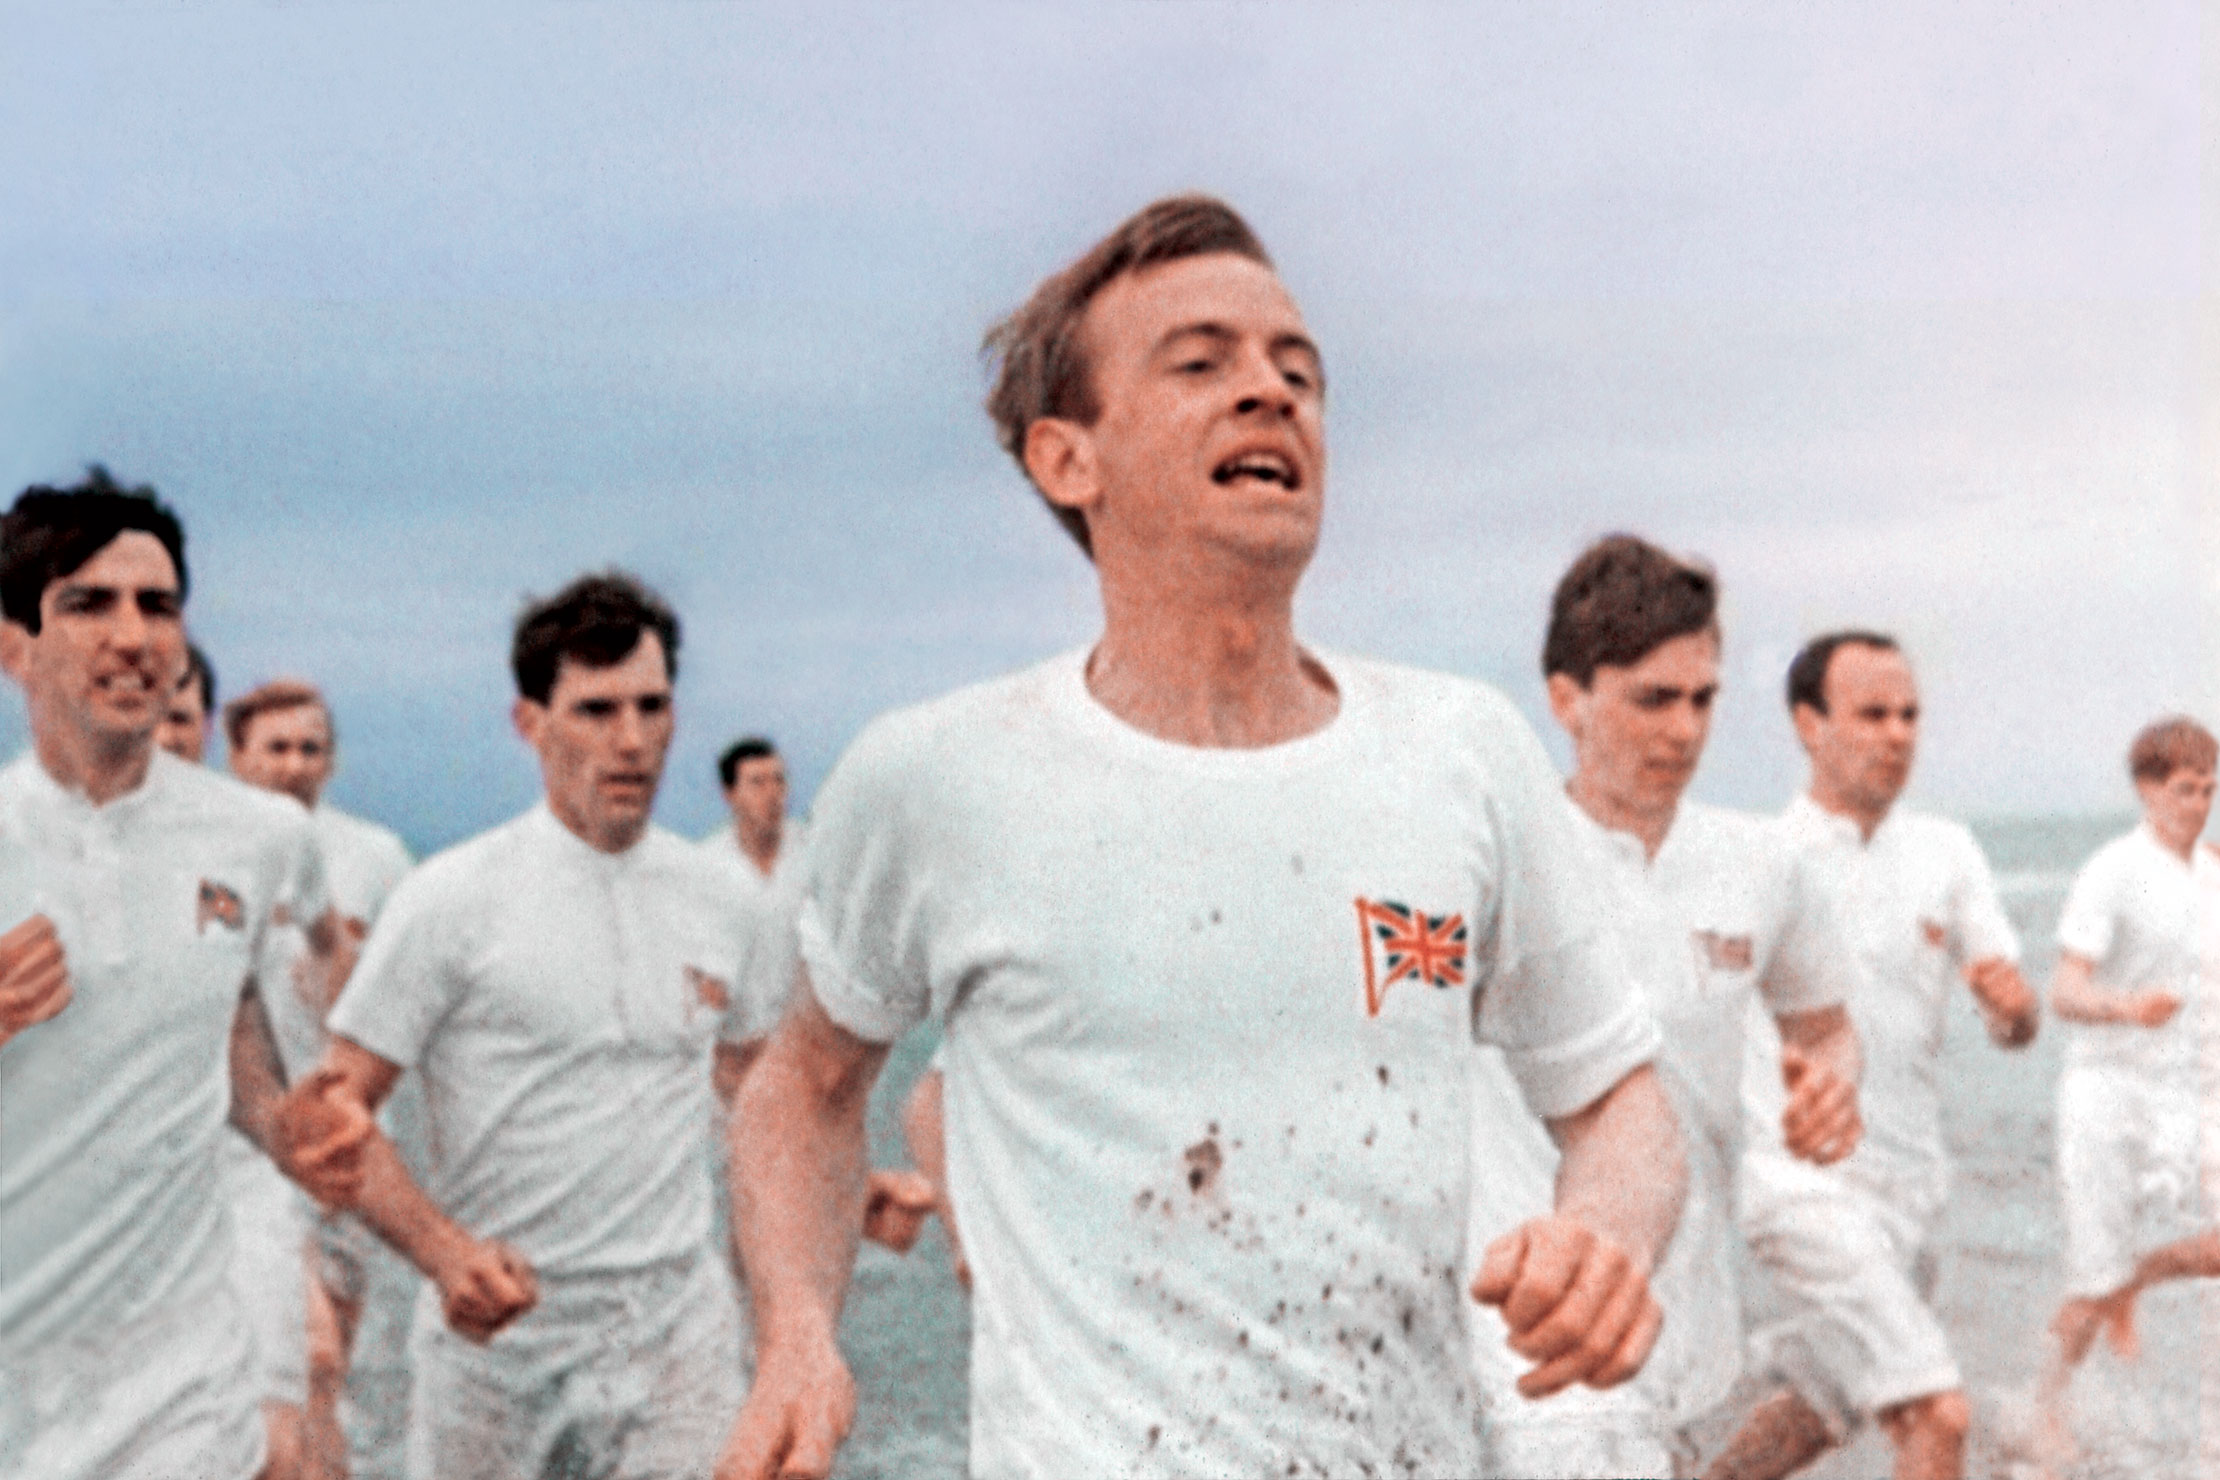 Still shot from the movie: Chariots Of Fire.